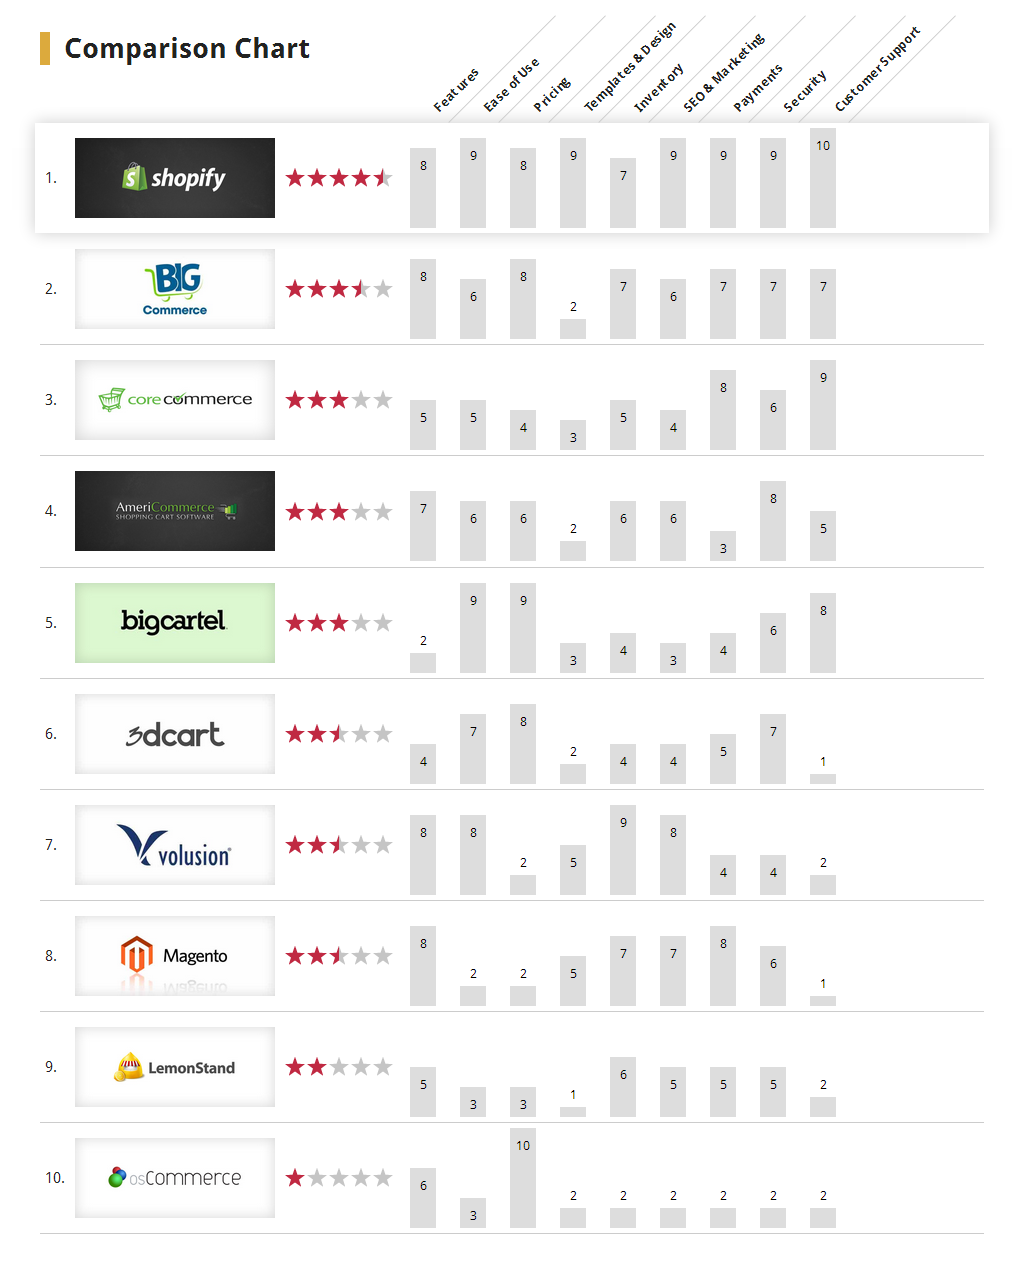 Top 10 Ecommerce Platforms Reviewed Ecommerce Comparison Chart